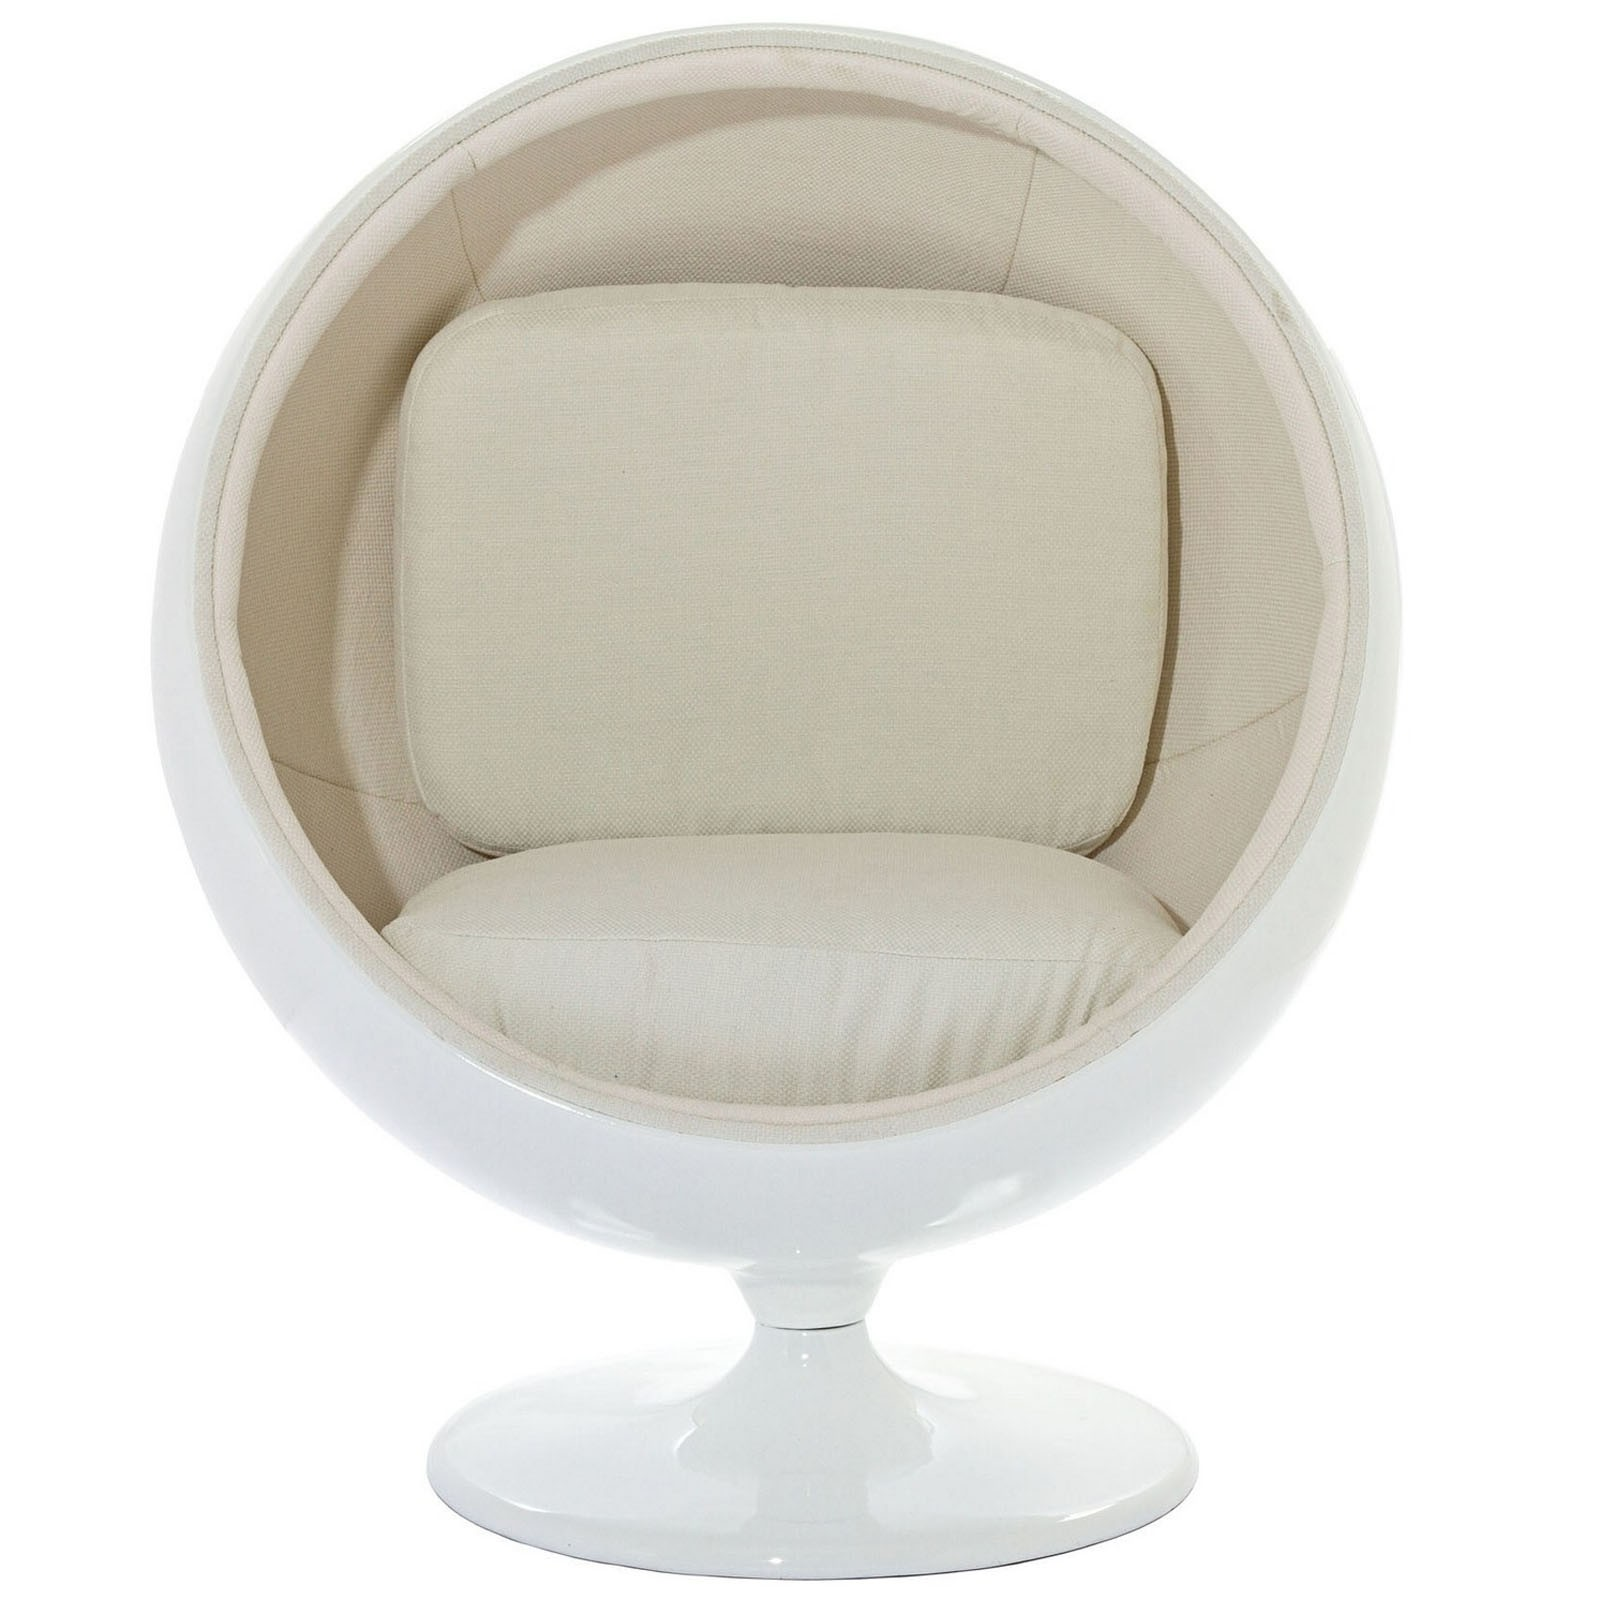 Kaddur Lounge Chair - White